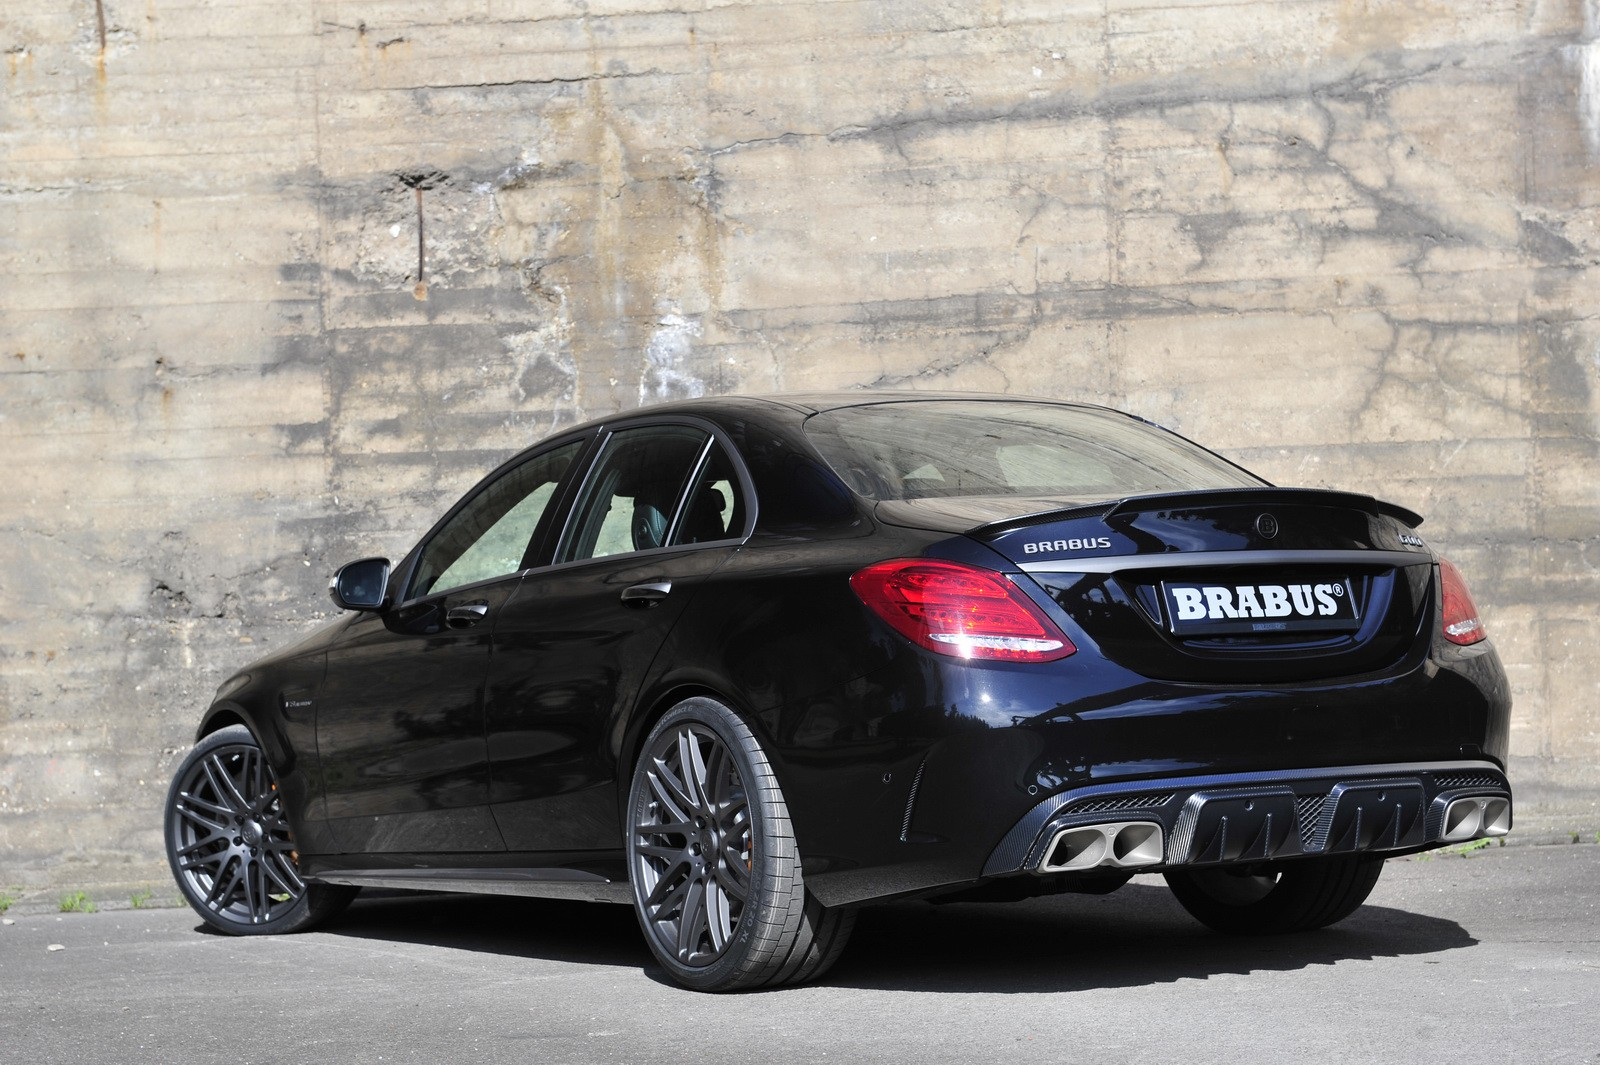 mercedes benz c63 amg s from brabus vehicles